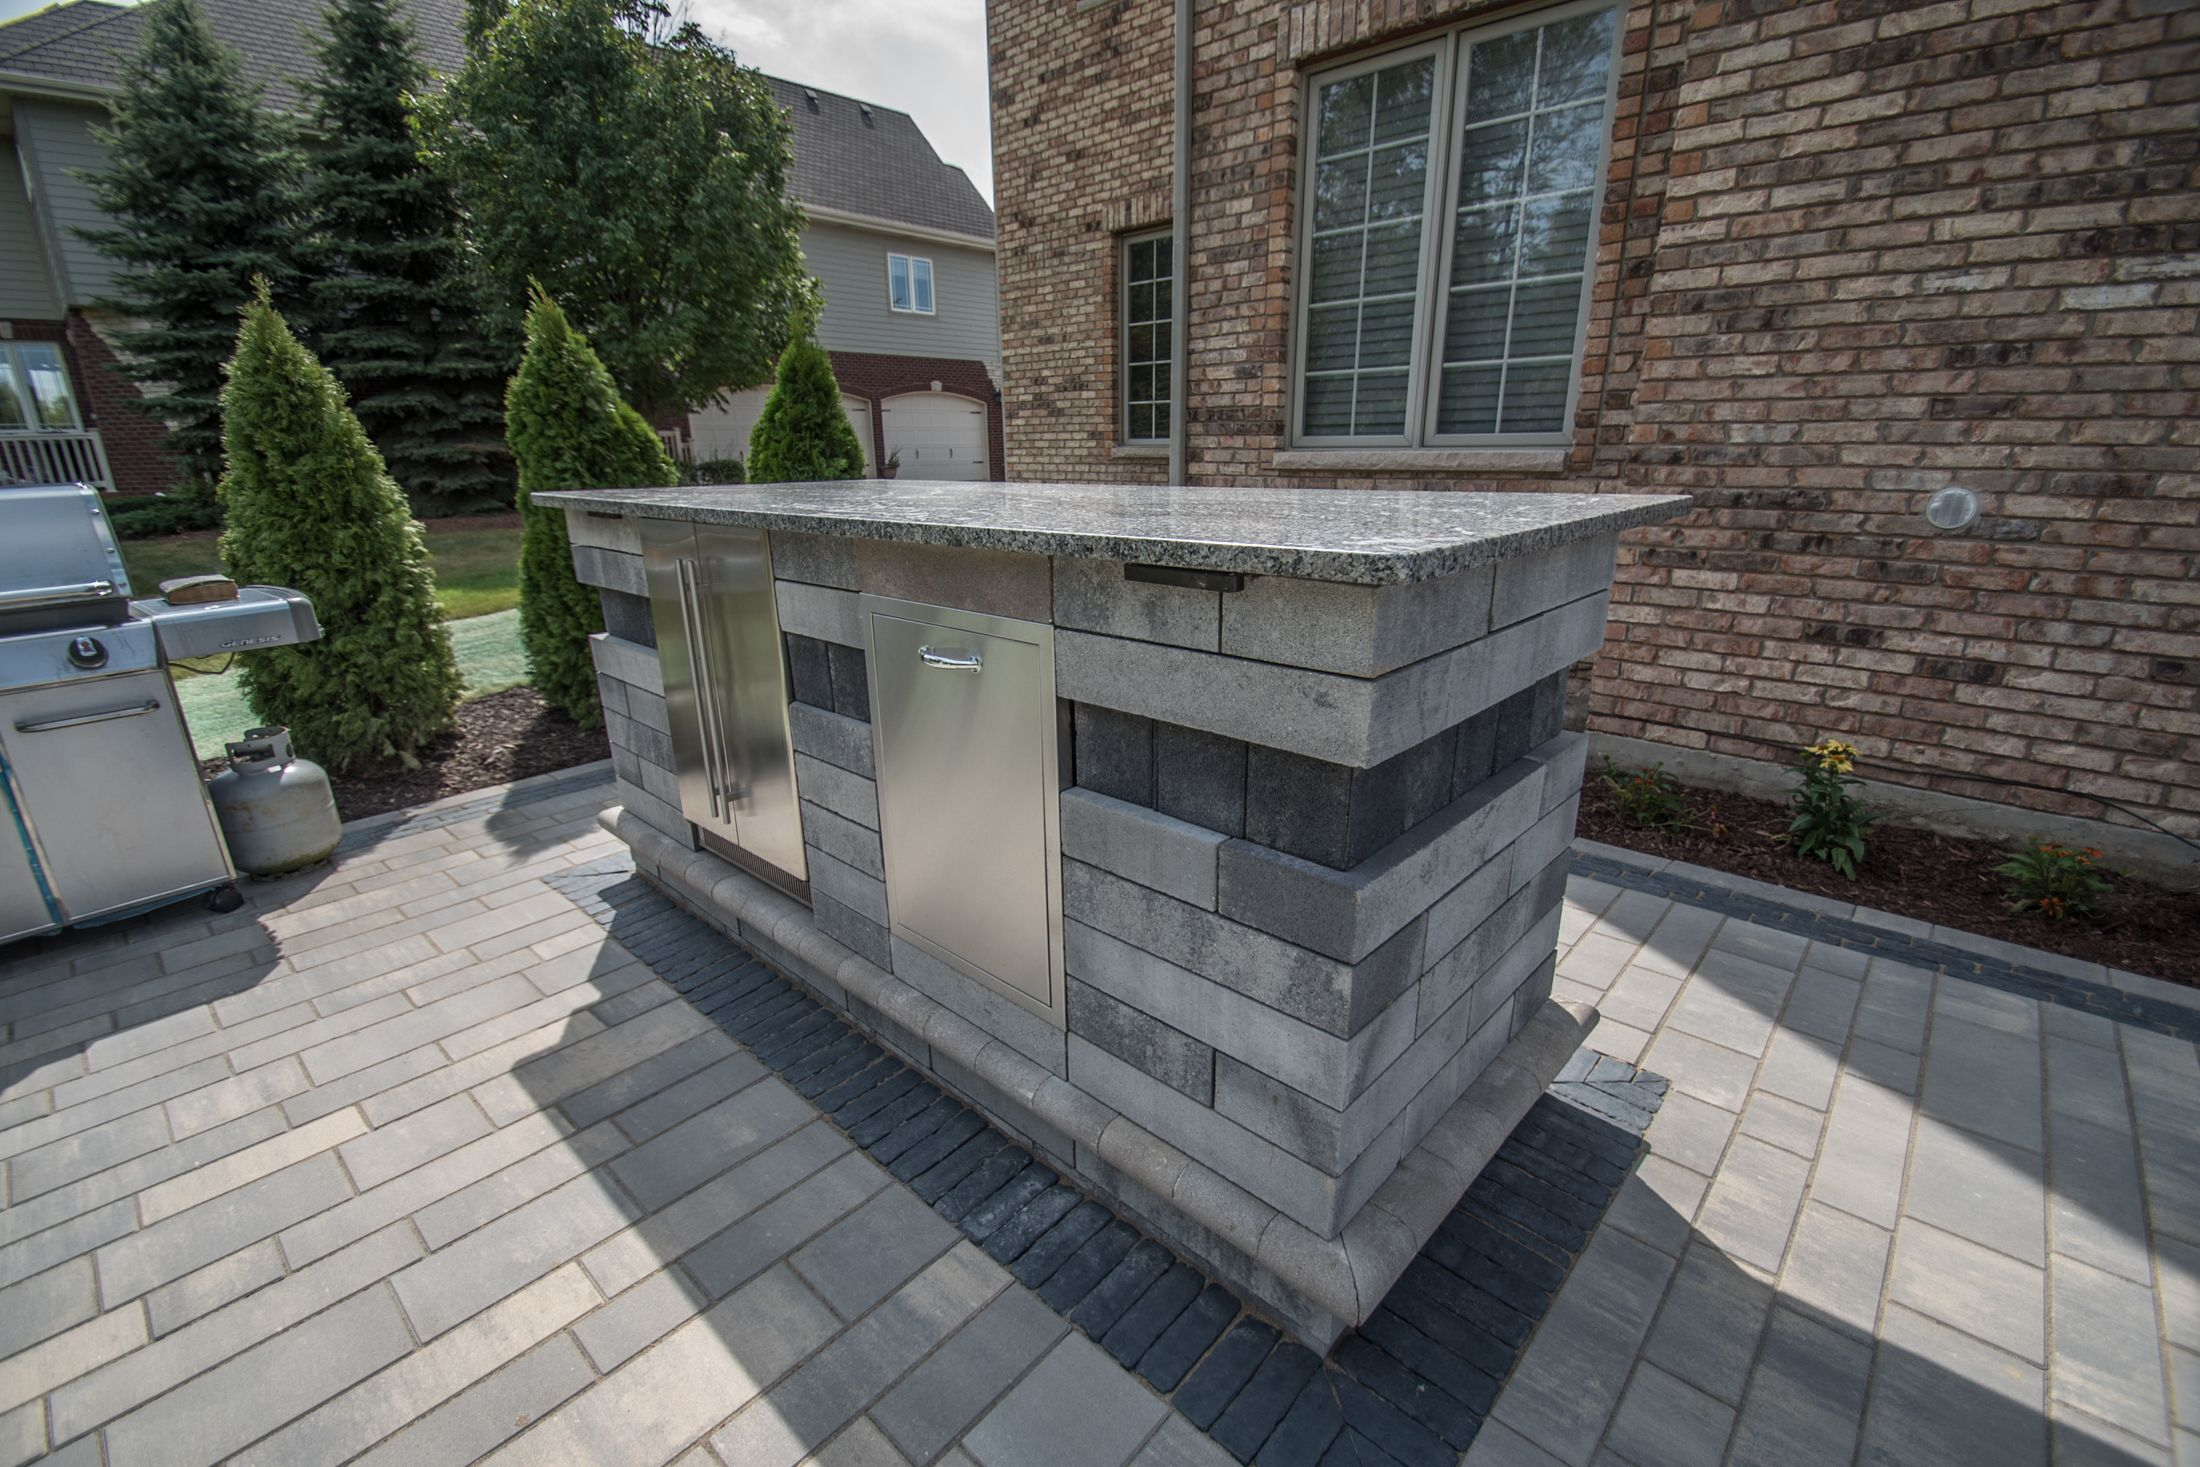 we have your outdoor kitchen island design options call today for a quote patiodesign on outdoor kitchen island id=18424